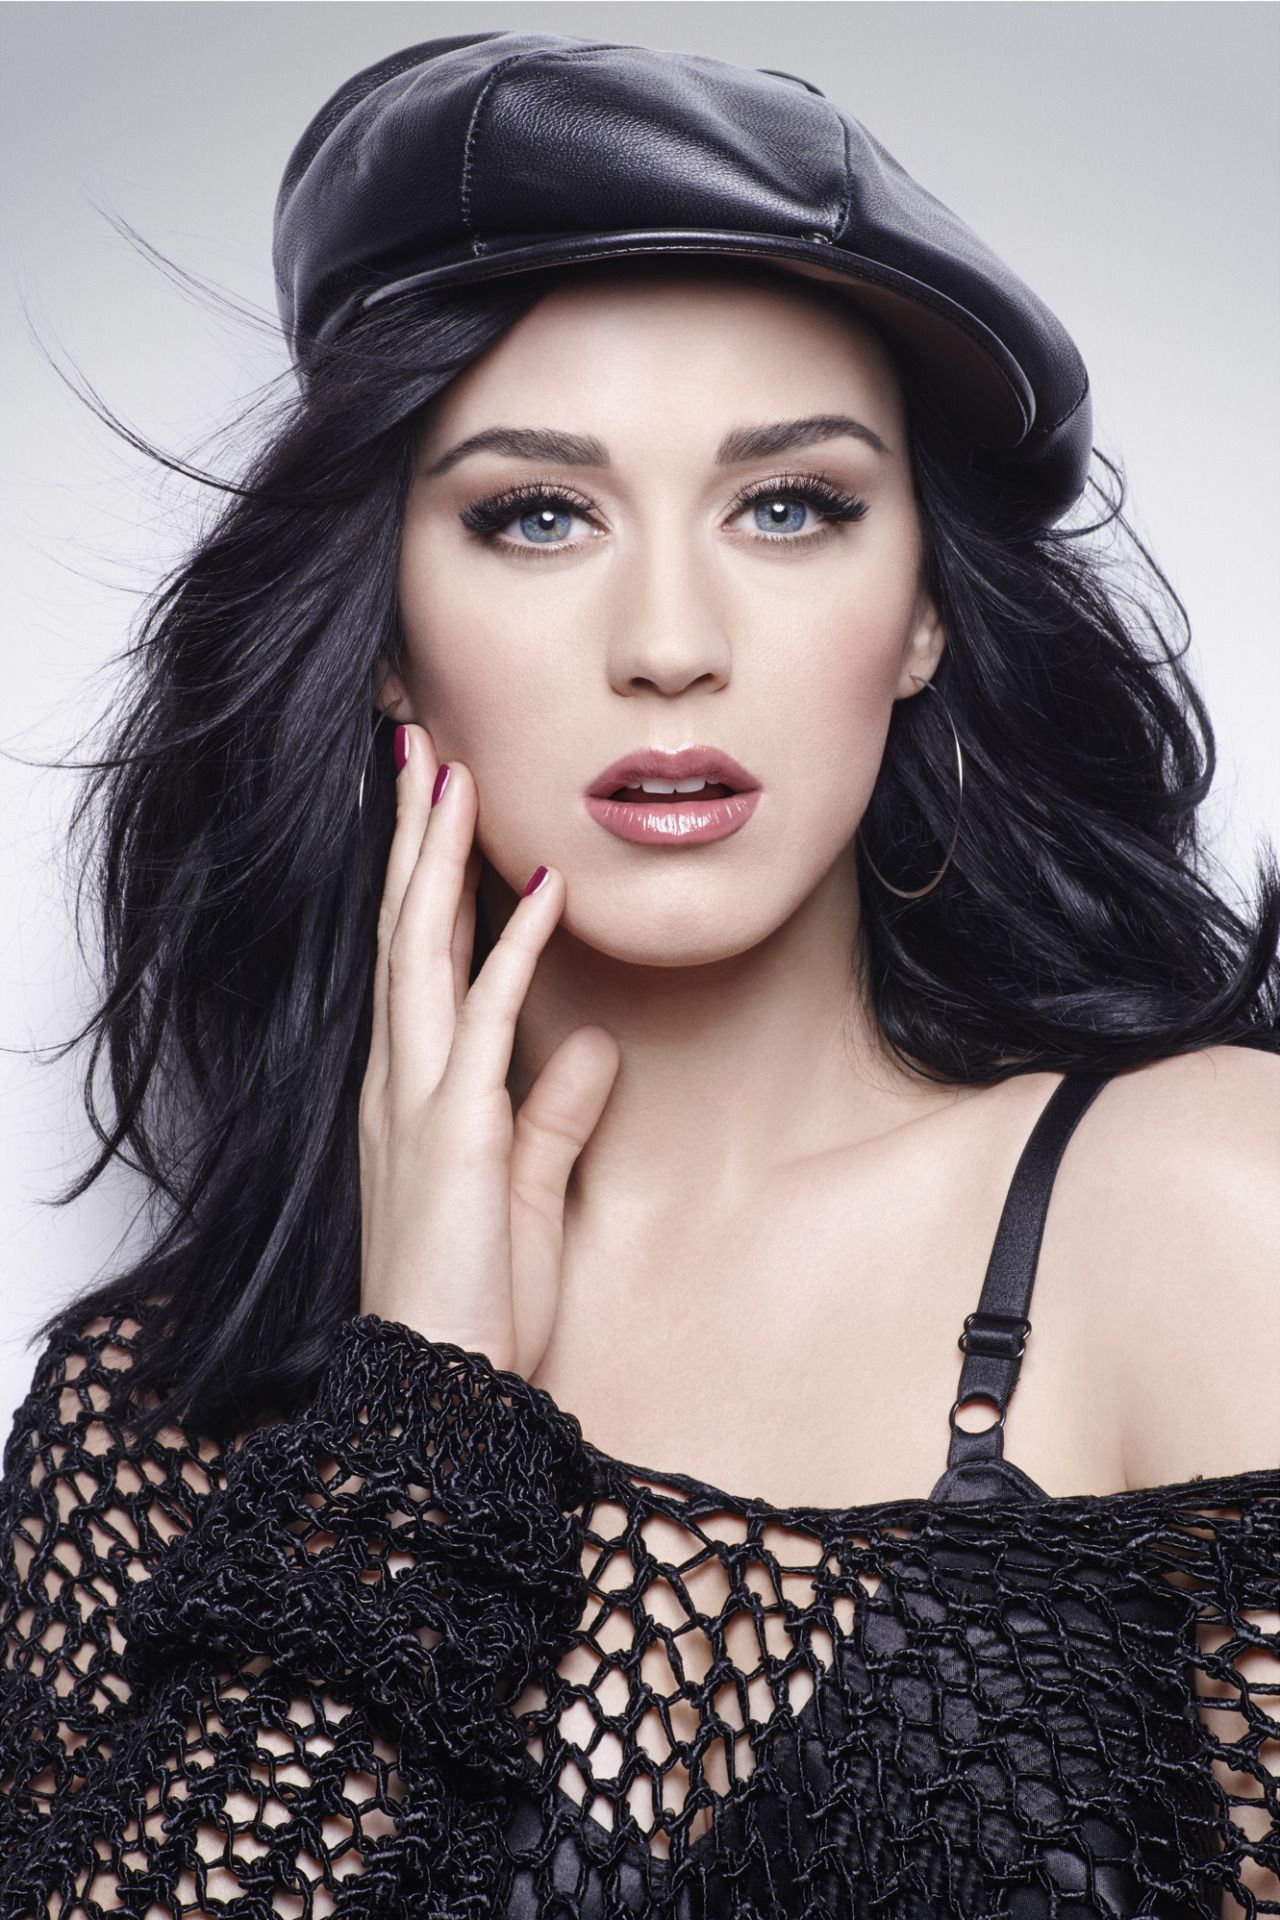 Pin by SKYE on Katy Perry Katy perry, Covergirl